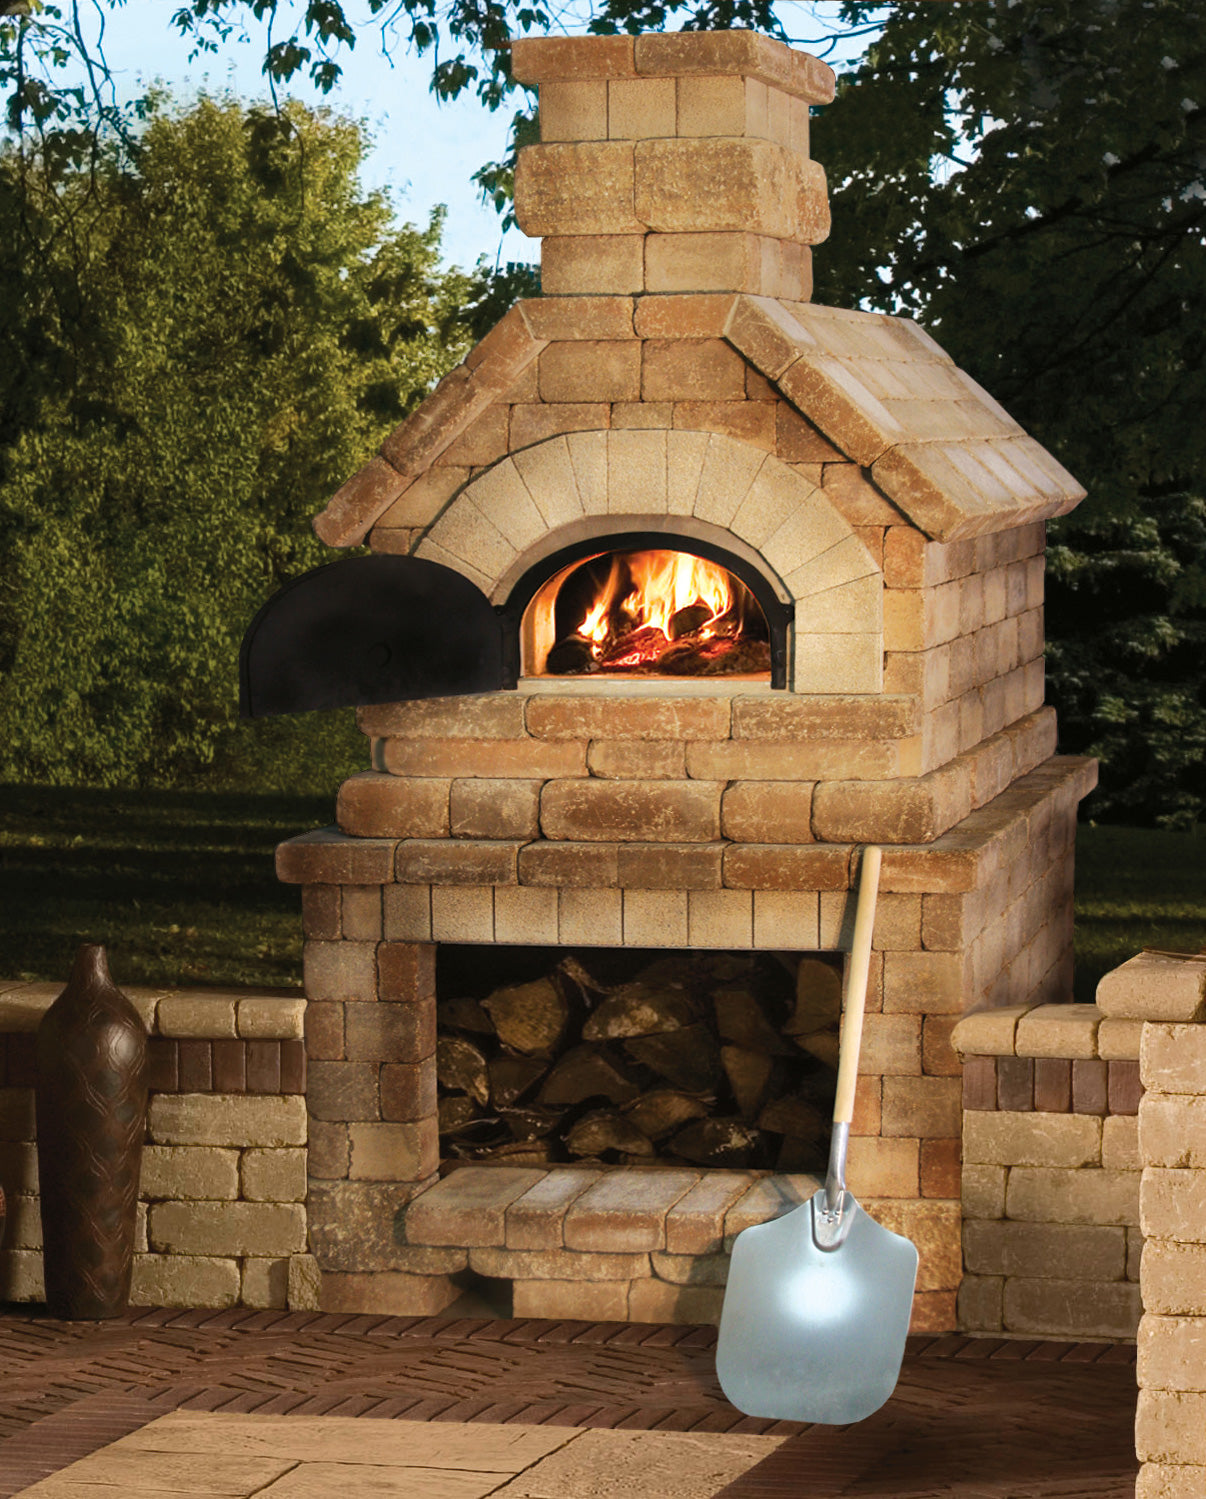 Cbo 750 Diy Kit Wood Fired Pizza Oven Our Most Popular Bundle 38 X 28 Cooking Surface